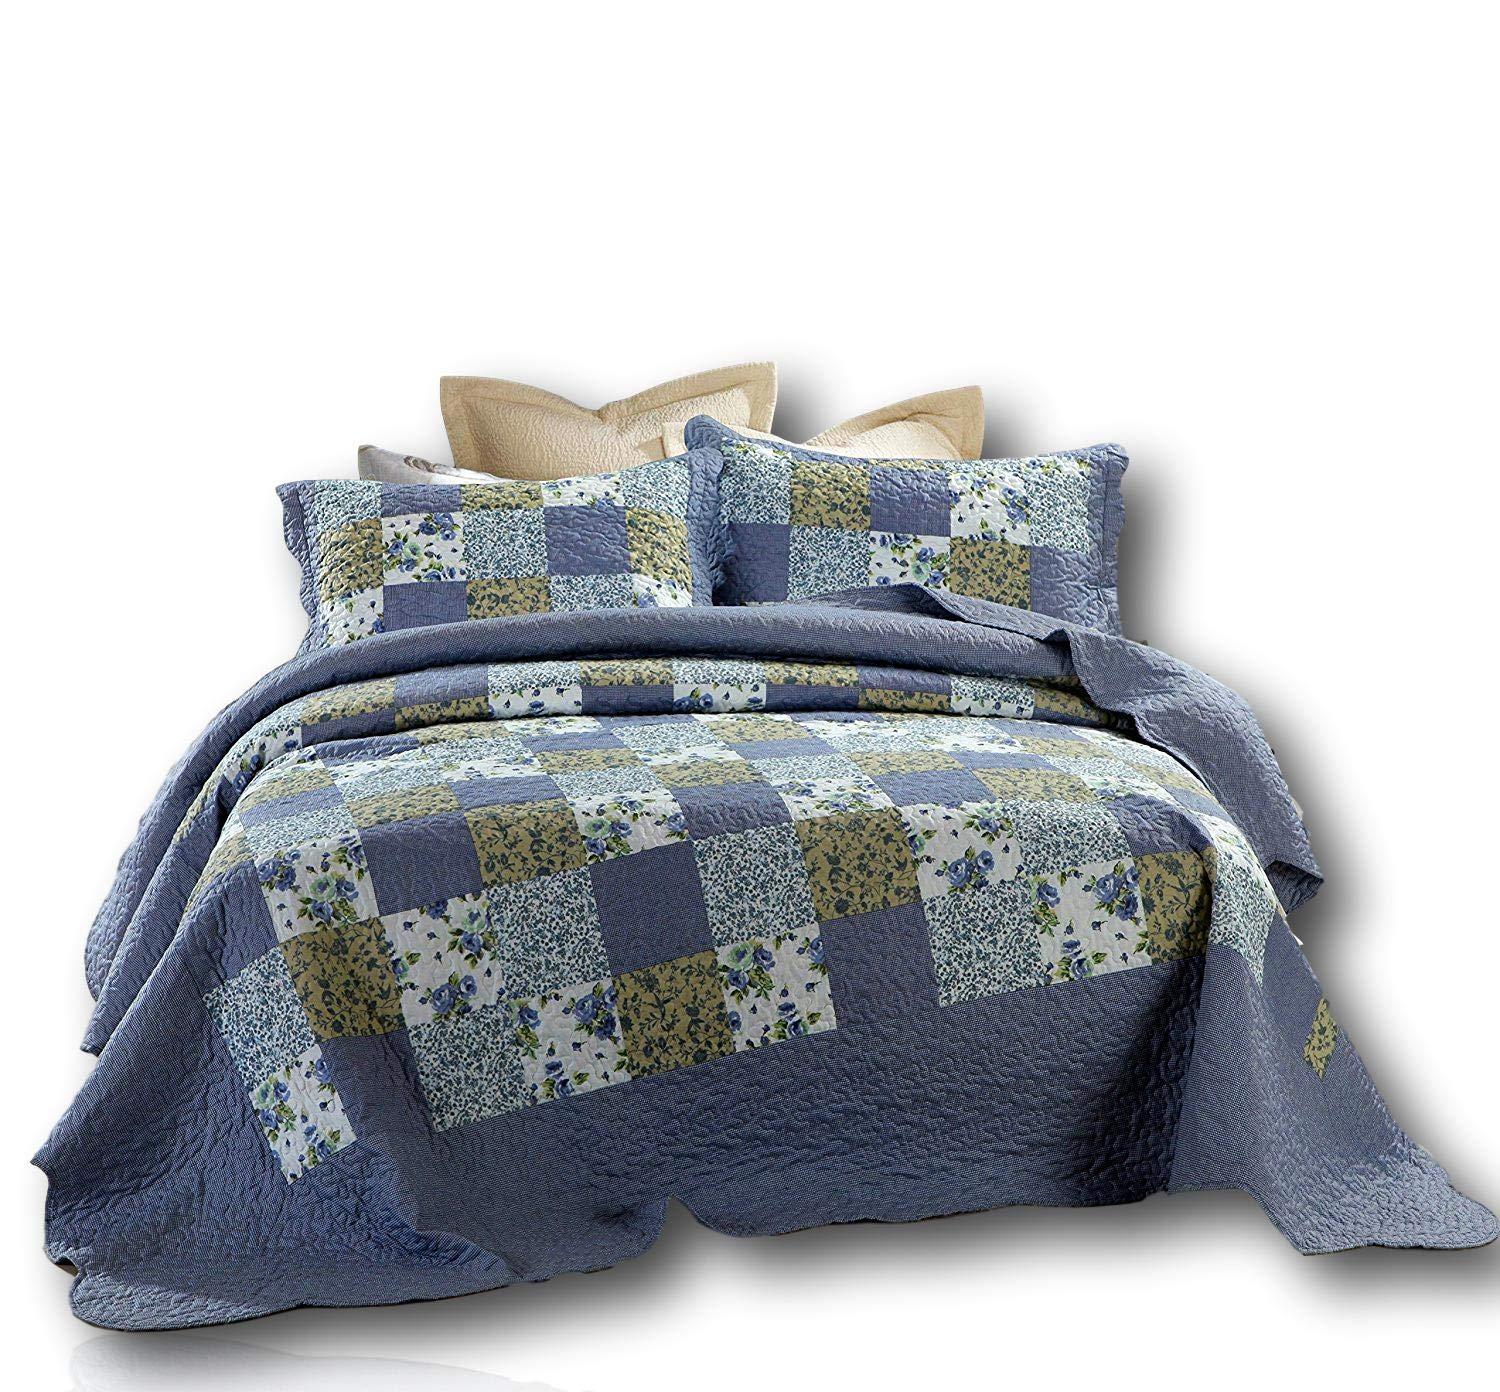 Dada Bedding Patchwork Bedspread Set - Blueberry Floral Plaid Checkered Quilted Coverlet - Twin - 2-Pieces